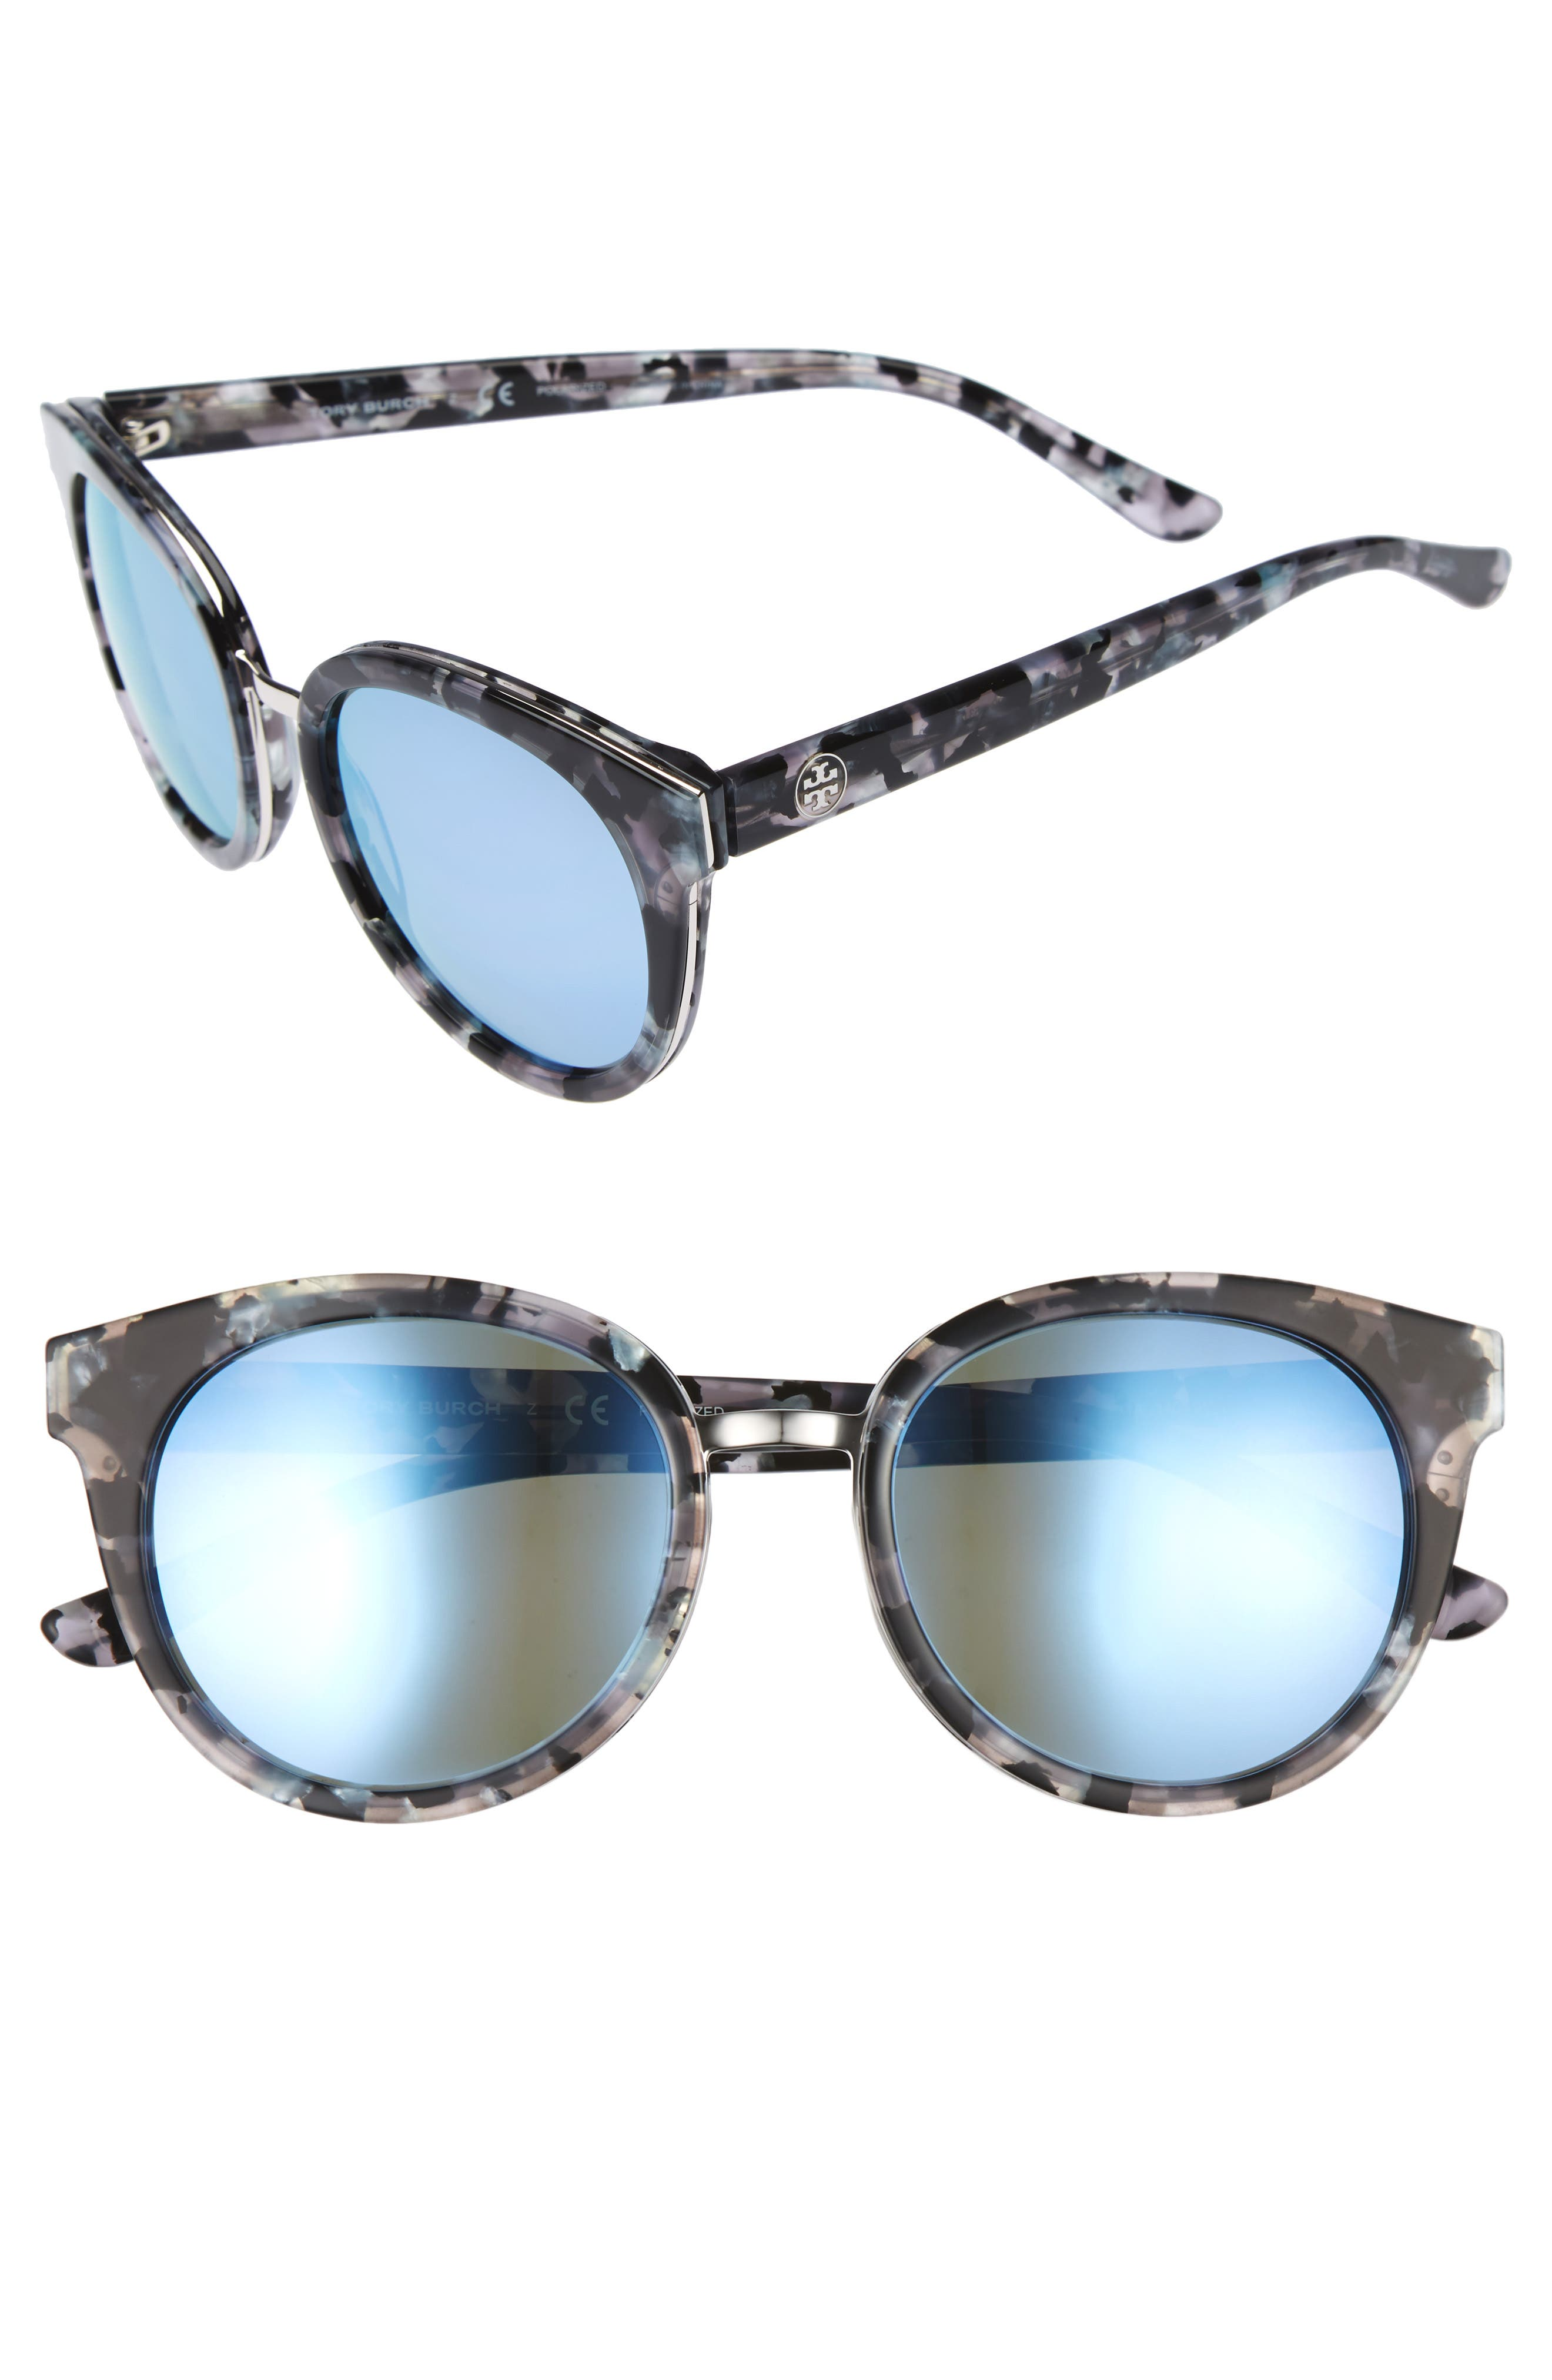 Main Image - Tory Burch 53mm Polarized Sunglasses